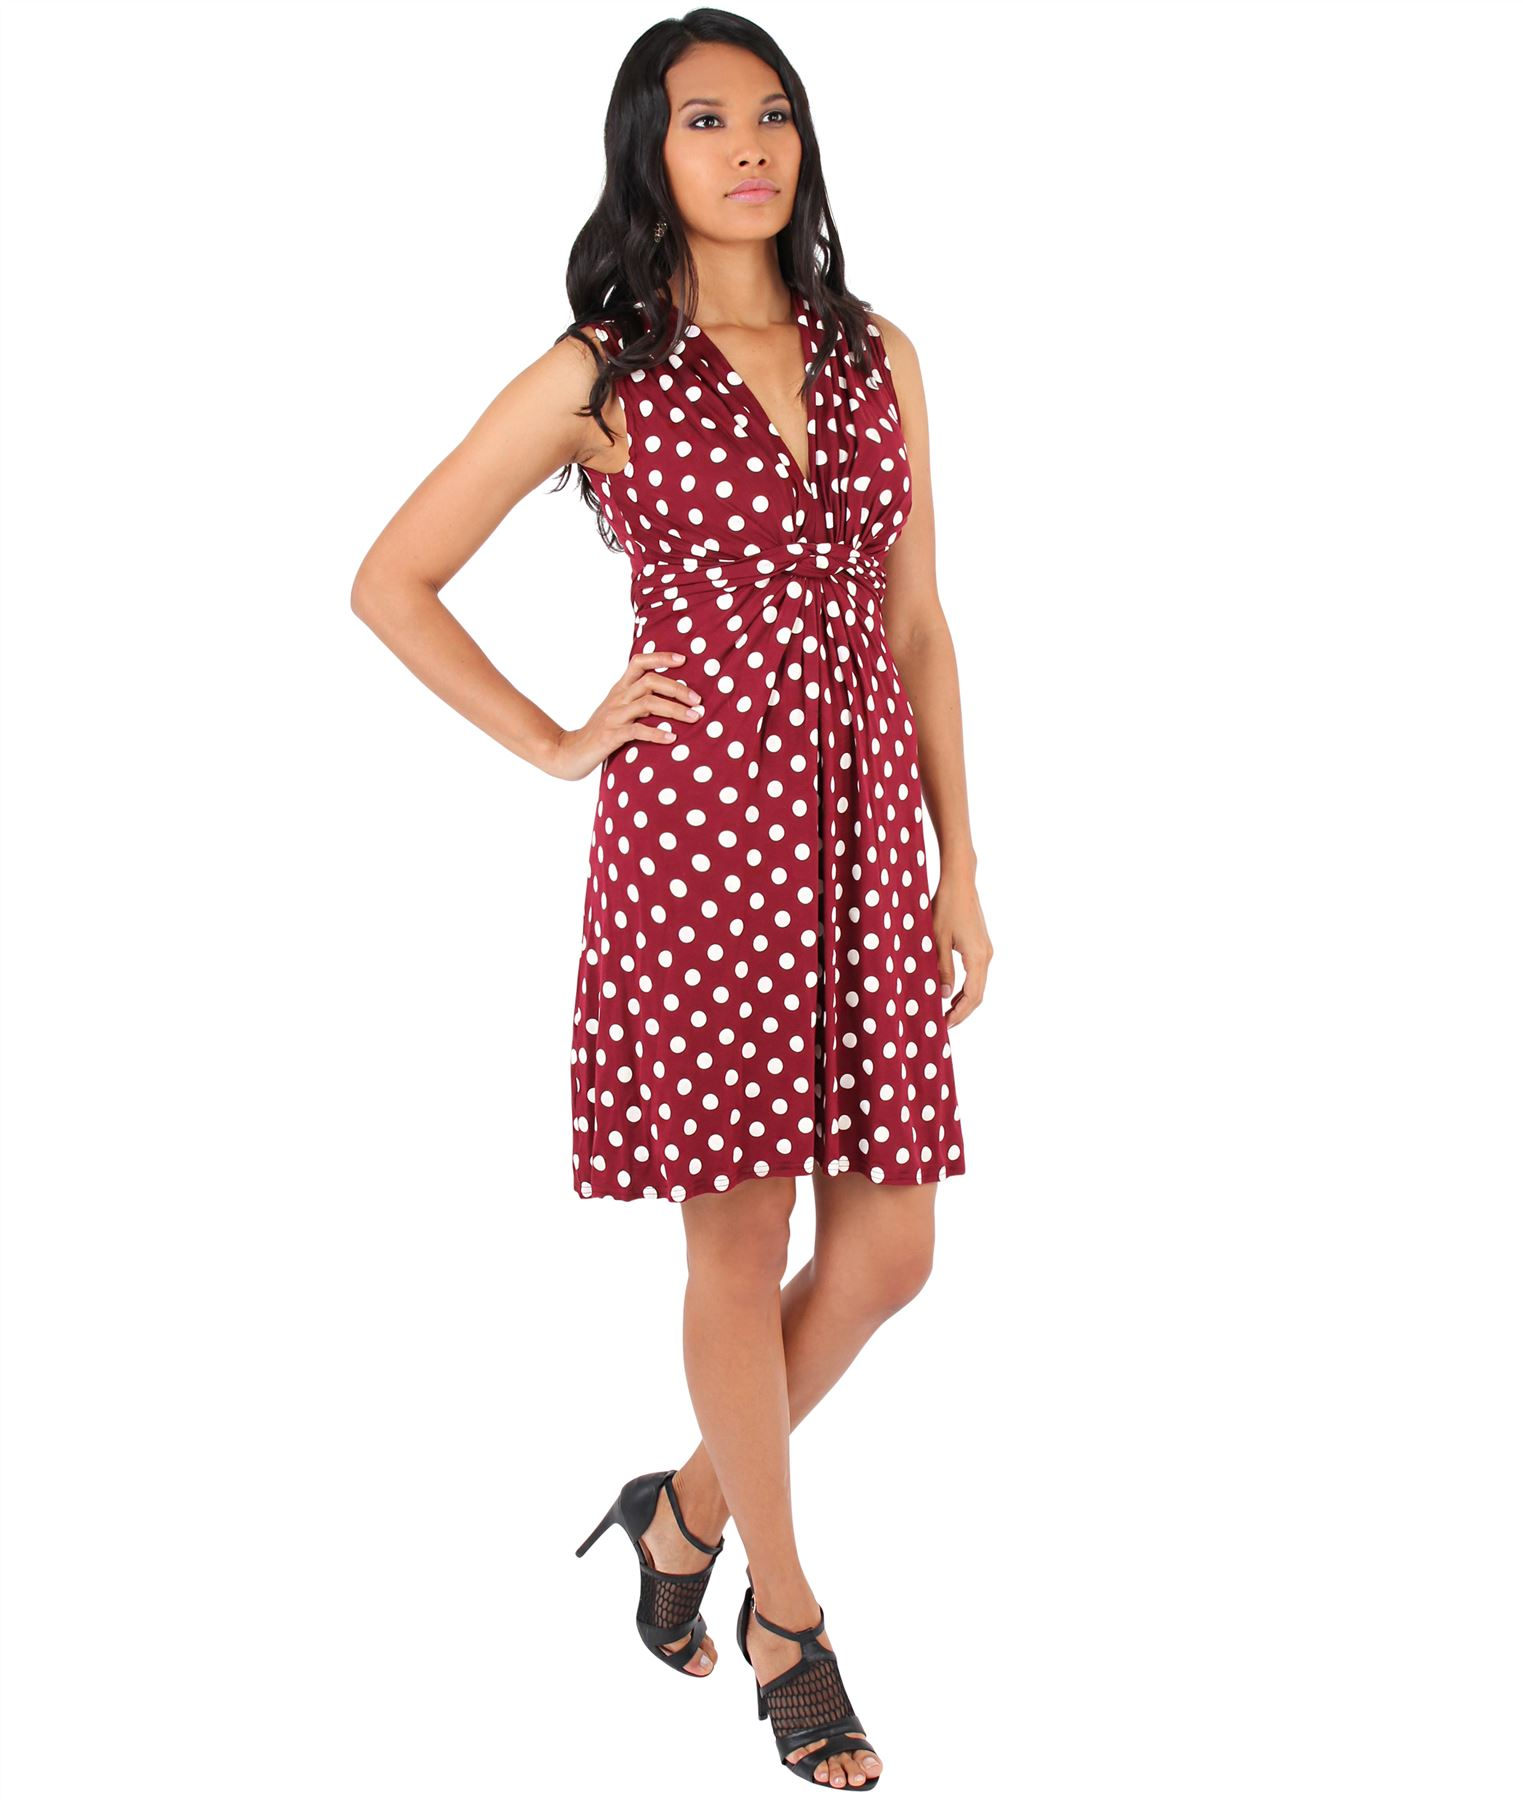 Womens-Polka-Dot-Retro-Dress-Pleated-Skirt-Wrap-Mini-V-Neck-Top-Swing-Party thumbnail 39